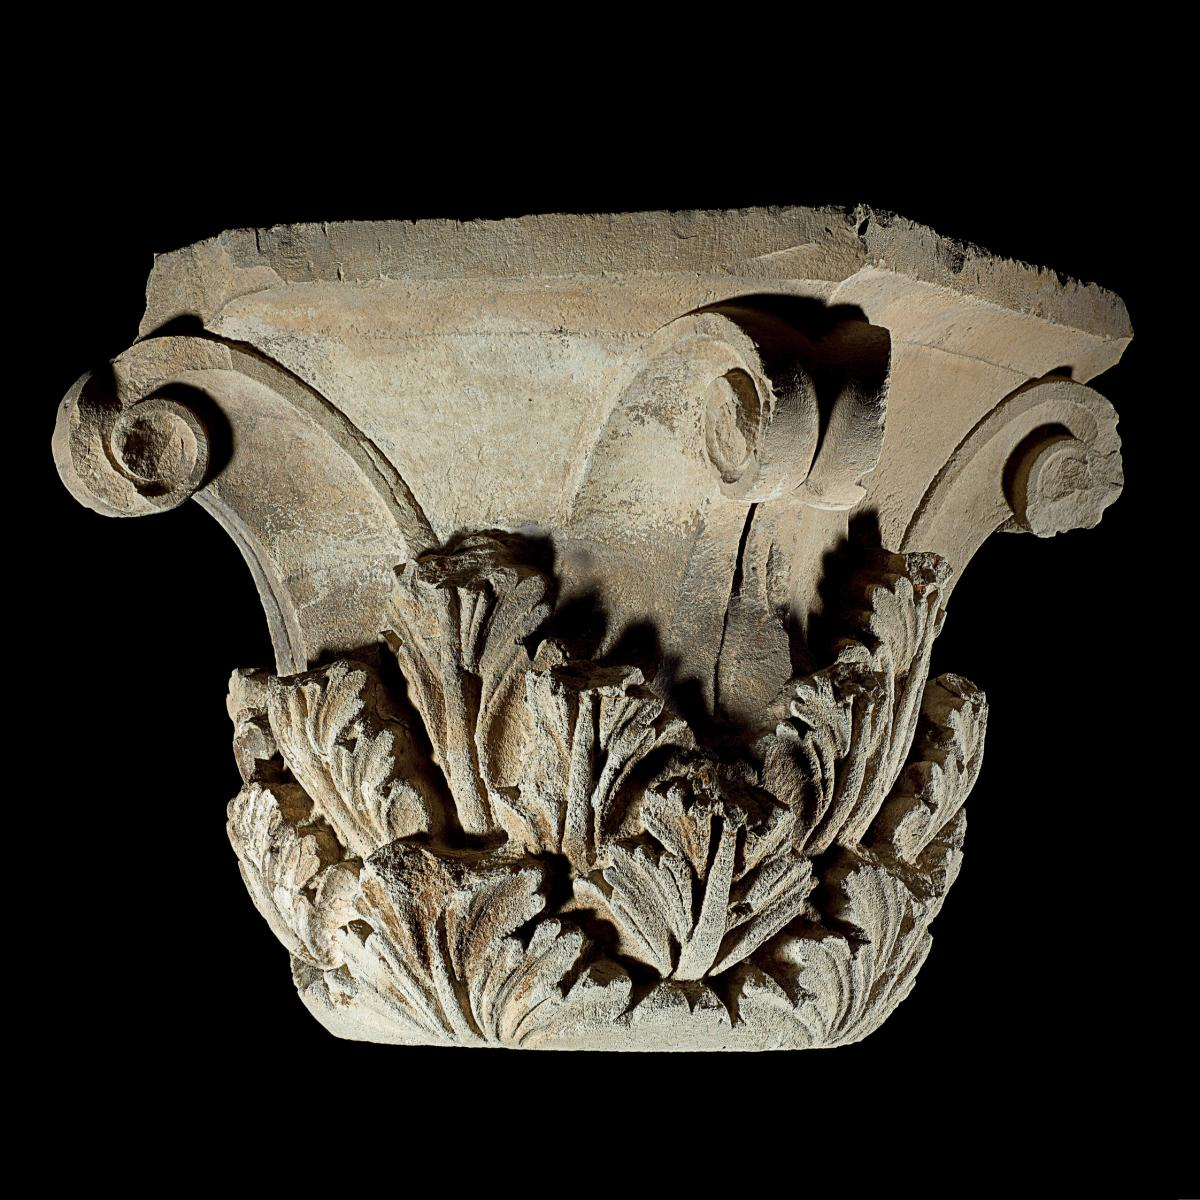 Photograph of a corinthian capital, leaves carved from stone